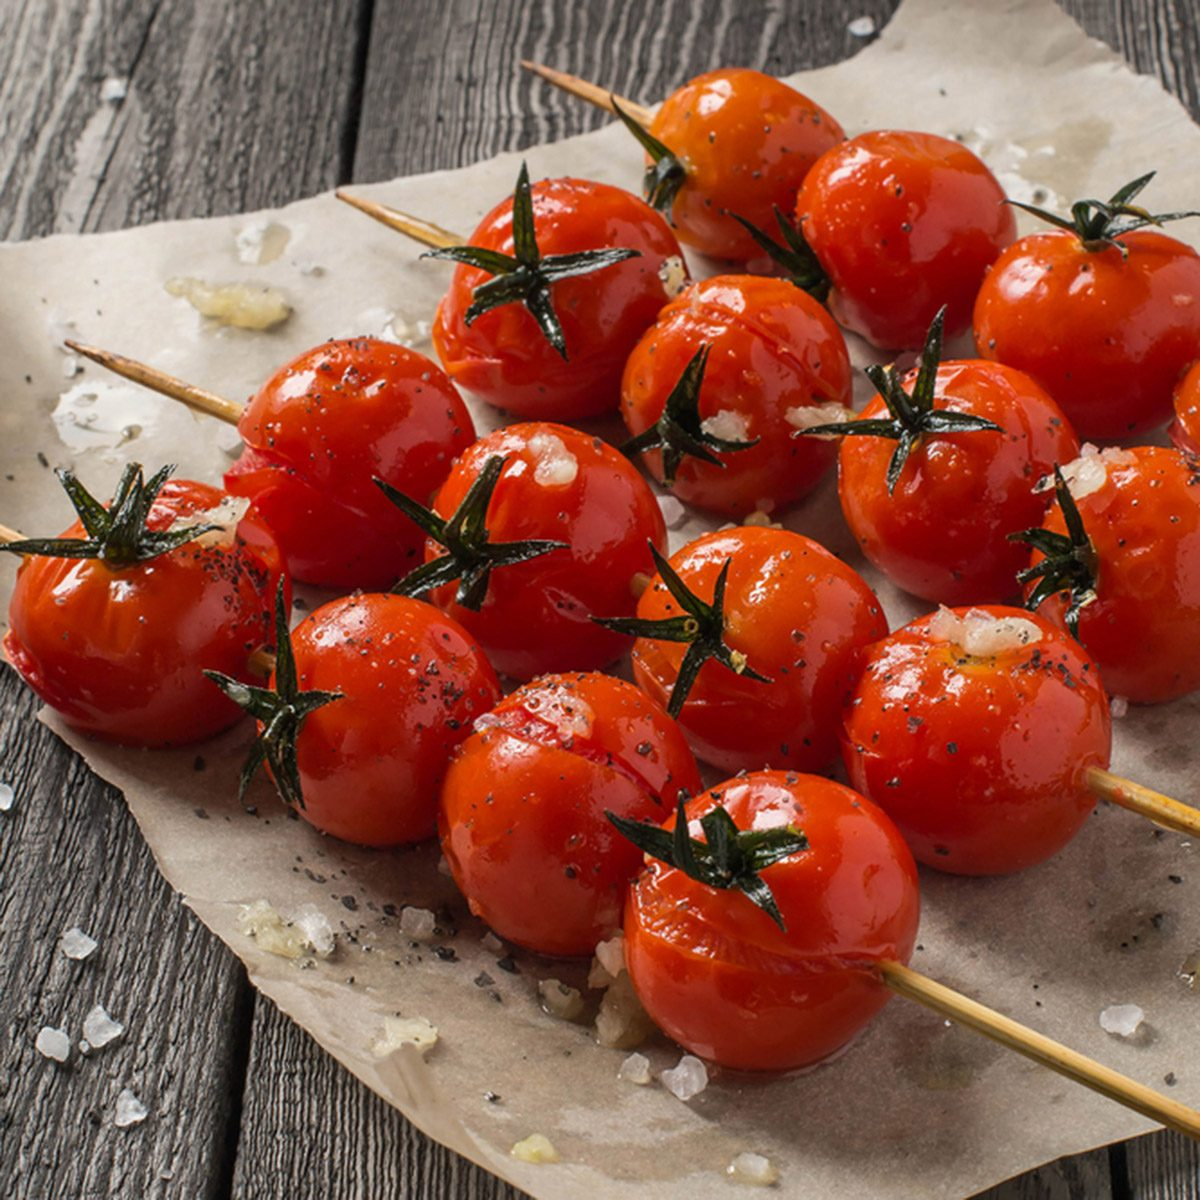 Cherry tomatoes grilled on skewers, lay on baking paper.